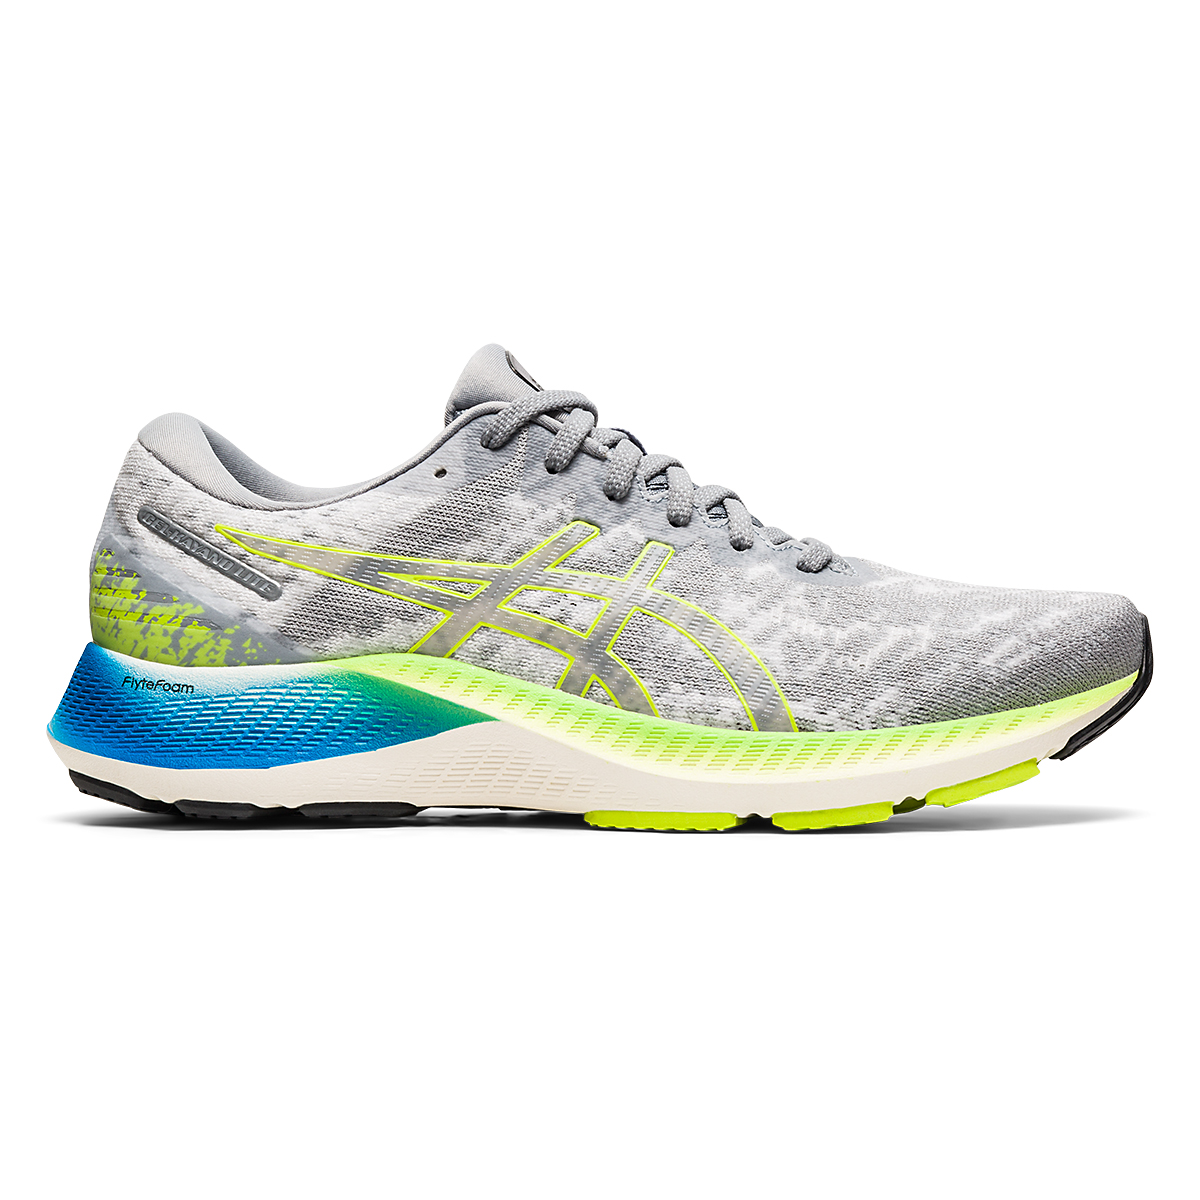 Men's Asics GEL-Kayano Lite Running Shoe - Color: Piedmont Grey/Sheet Rock - Size: 13 - Width: Regular, Piedmont Grey/Sheet Rock, large, image 1